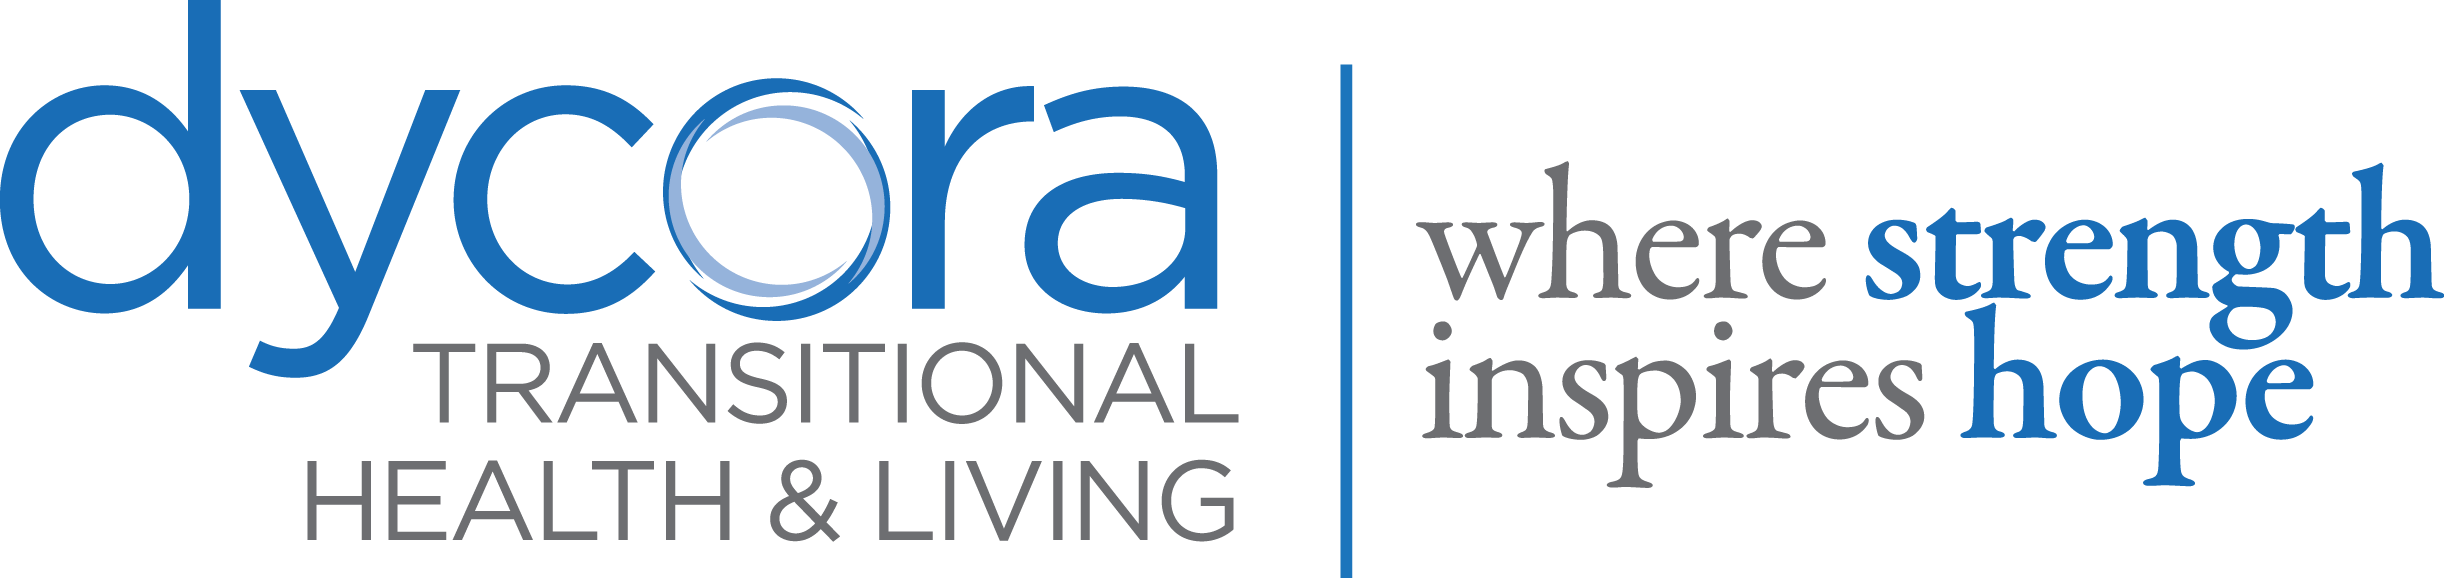 Dycora Transitional Health & Living | Where Strength Inspires Hope